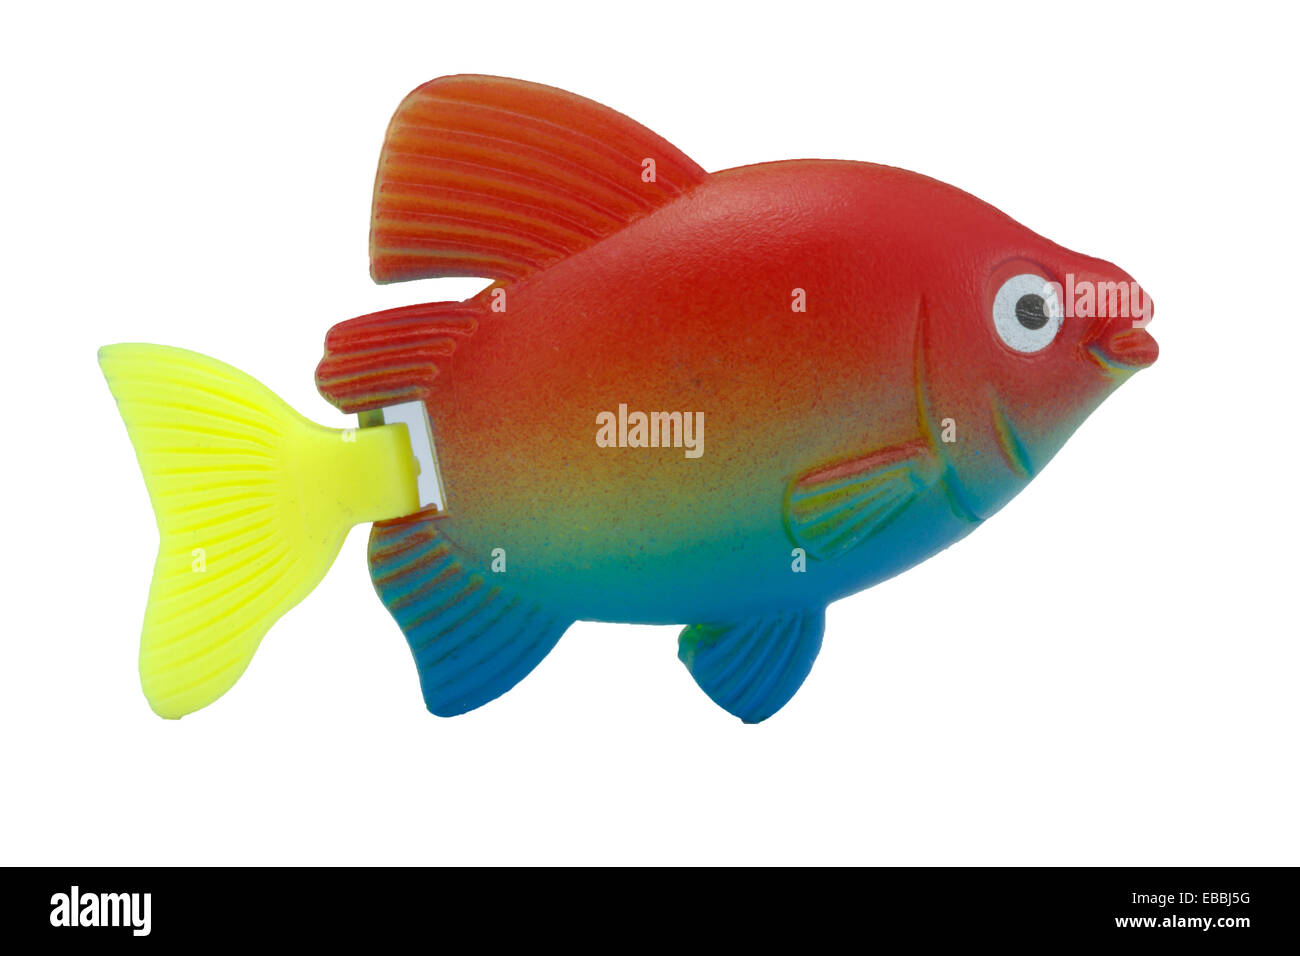 Colorful Fish White Background Stock Photos & Colorful Fish White ...